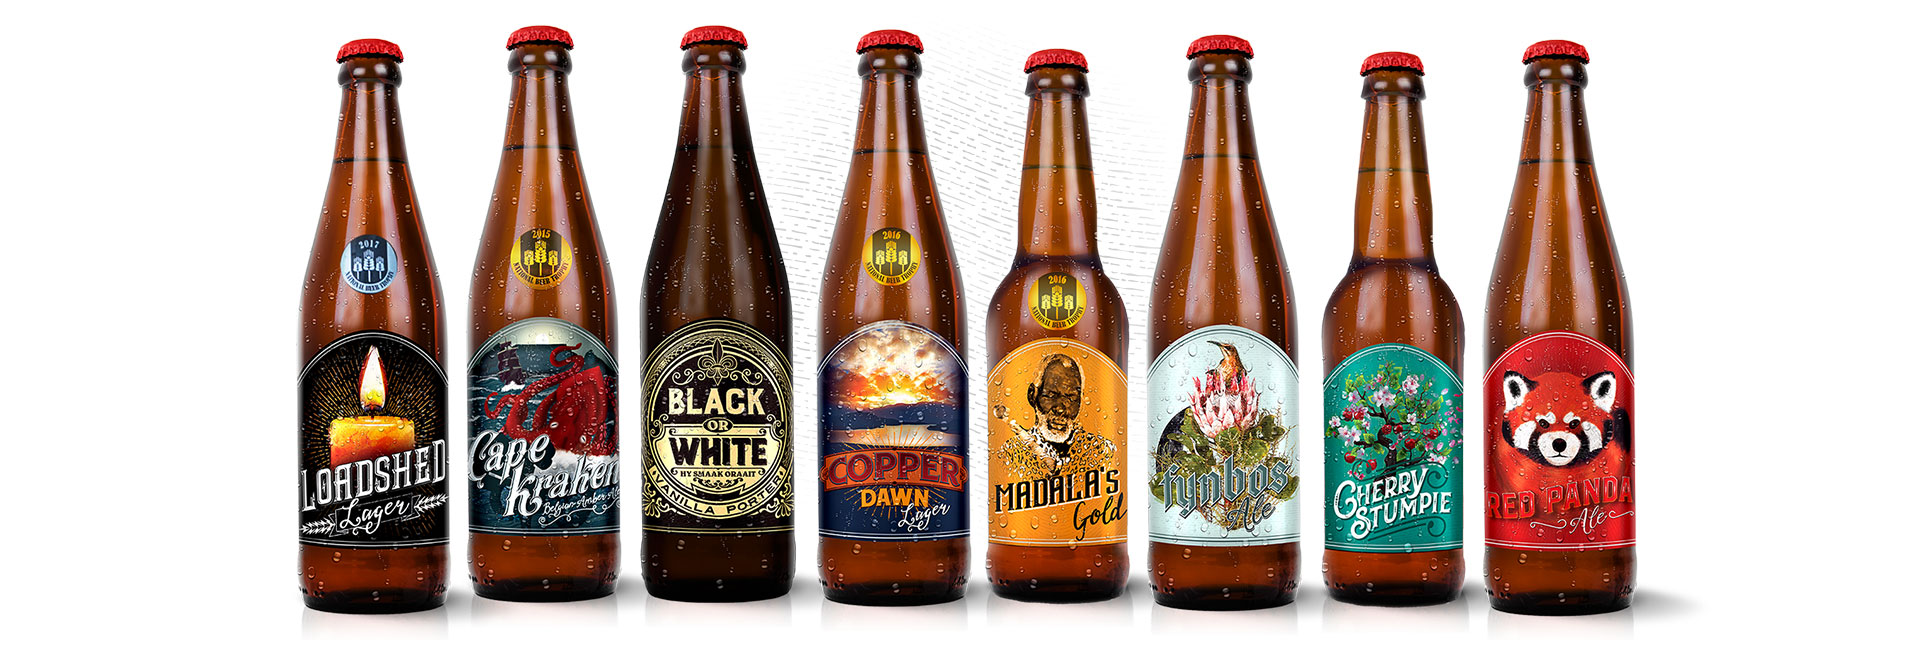 mountain_brewing_co_beers_b